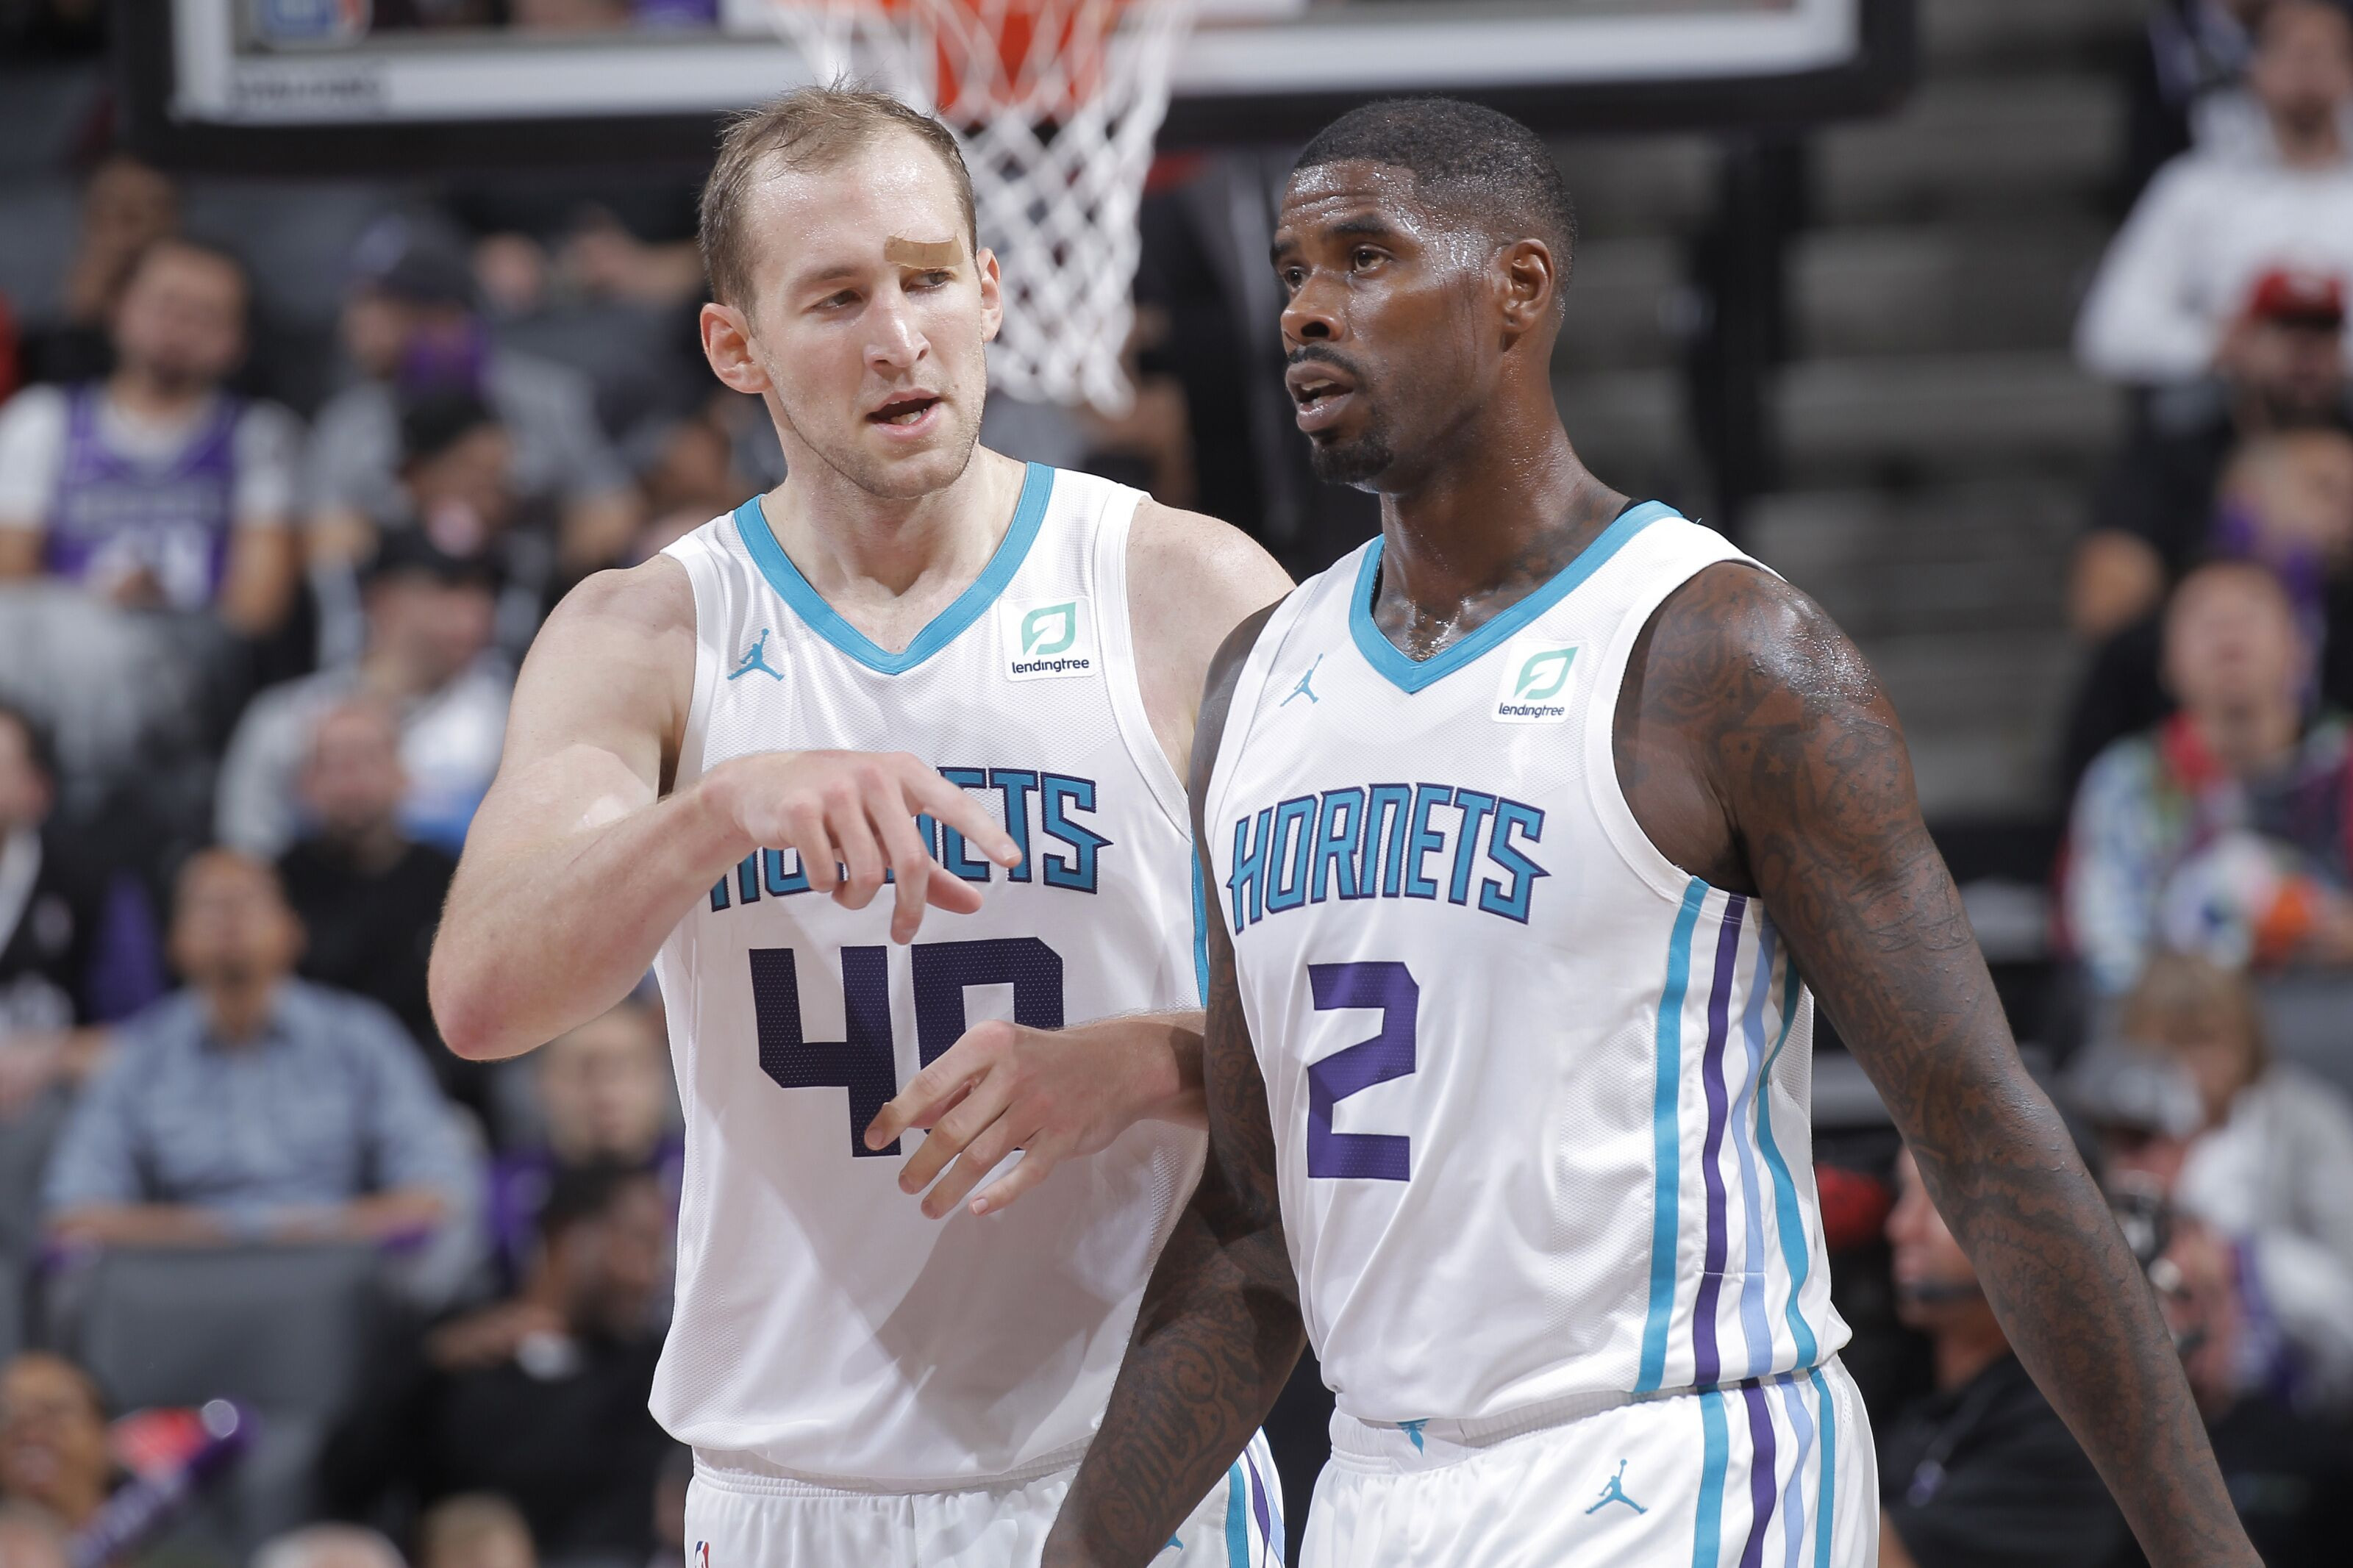 Charlotte Hornets fans: It's time to embrace the tank